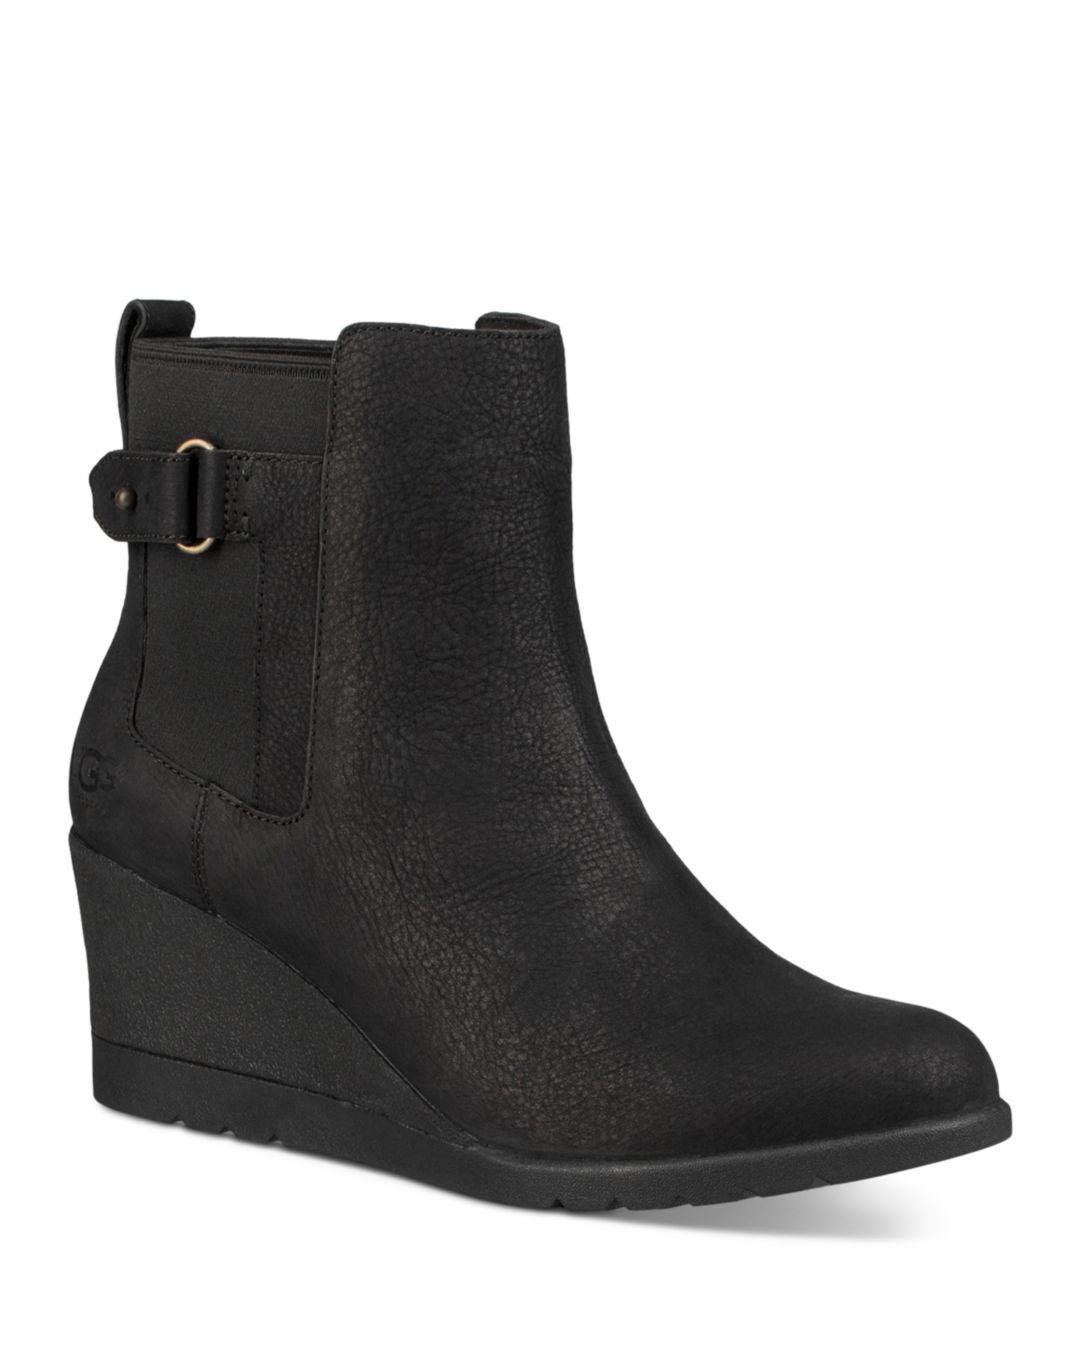 faacc935351 Lyst - UGG Indra Wedge Booties in Black